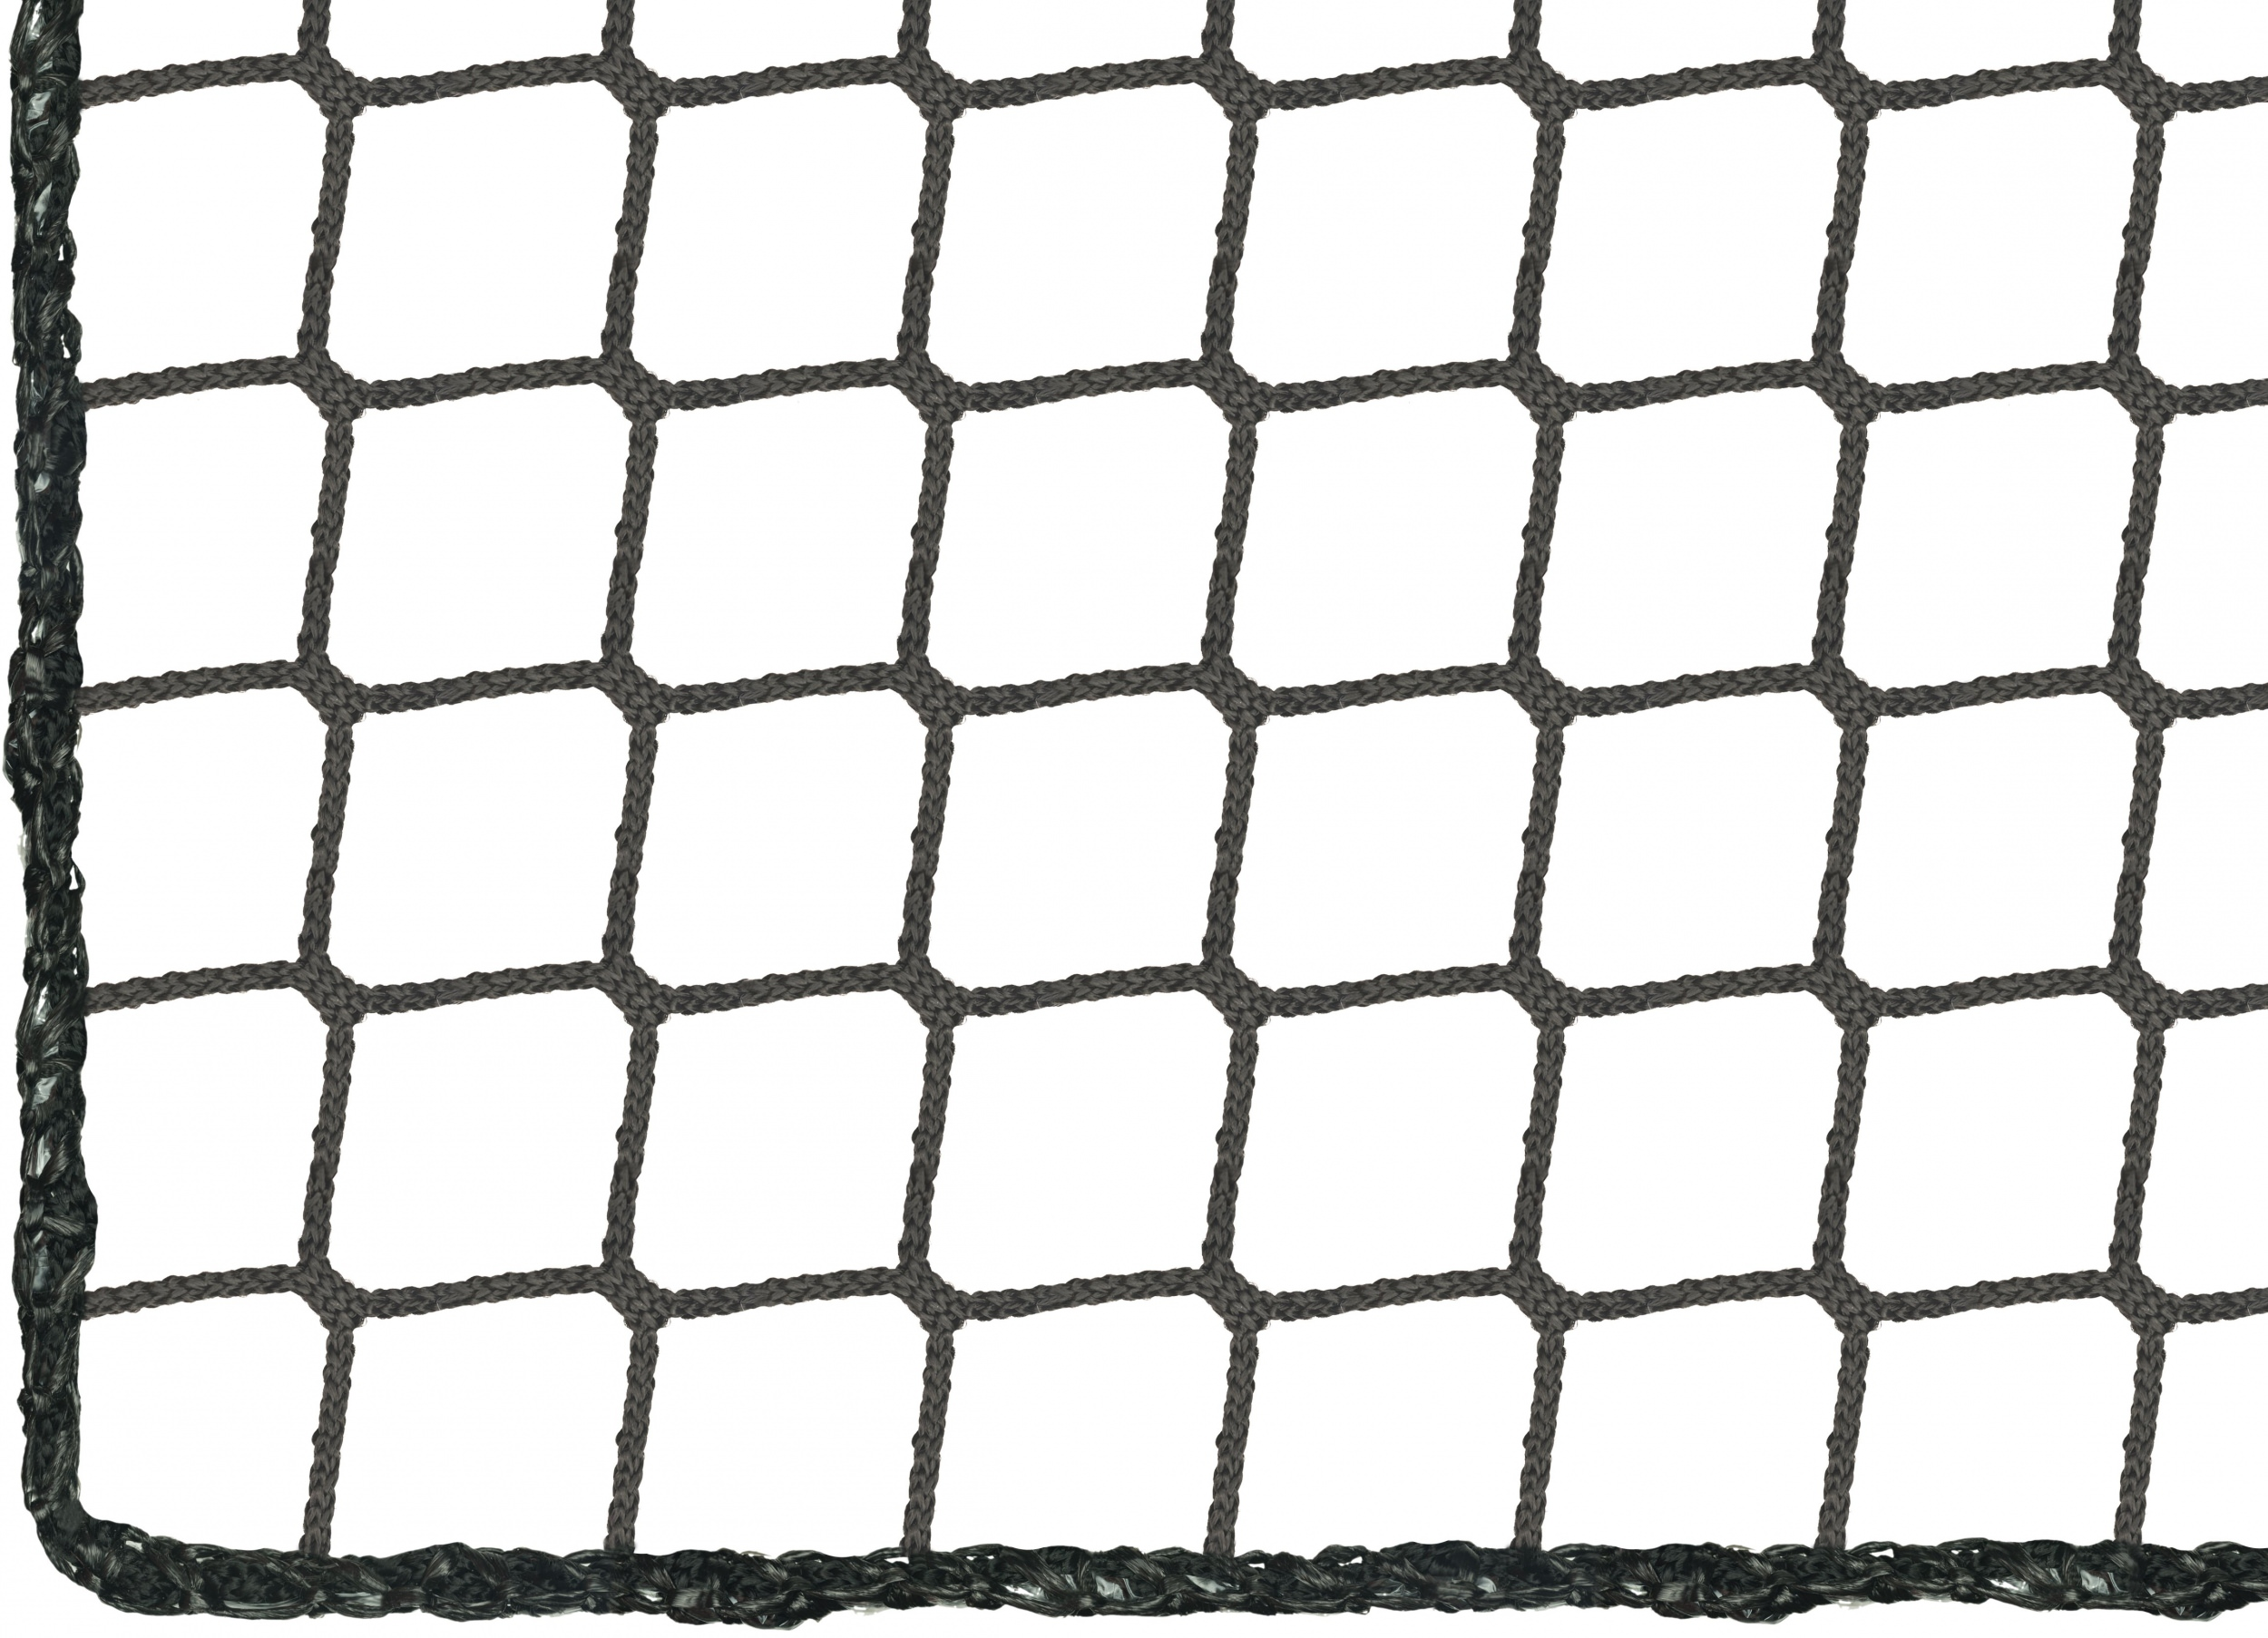 Protective Barade Safety Ting Ferruled Mesh High Security For Balcony